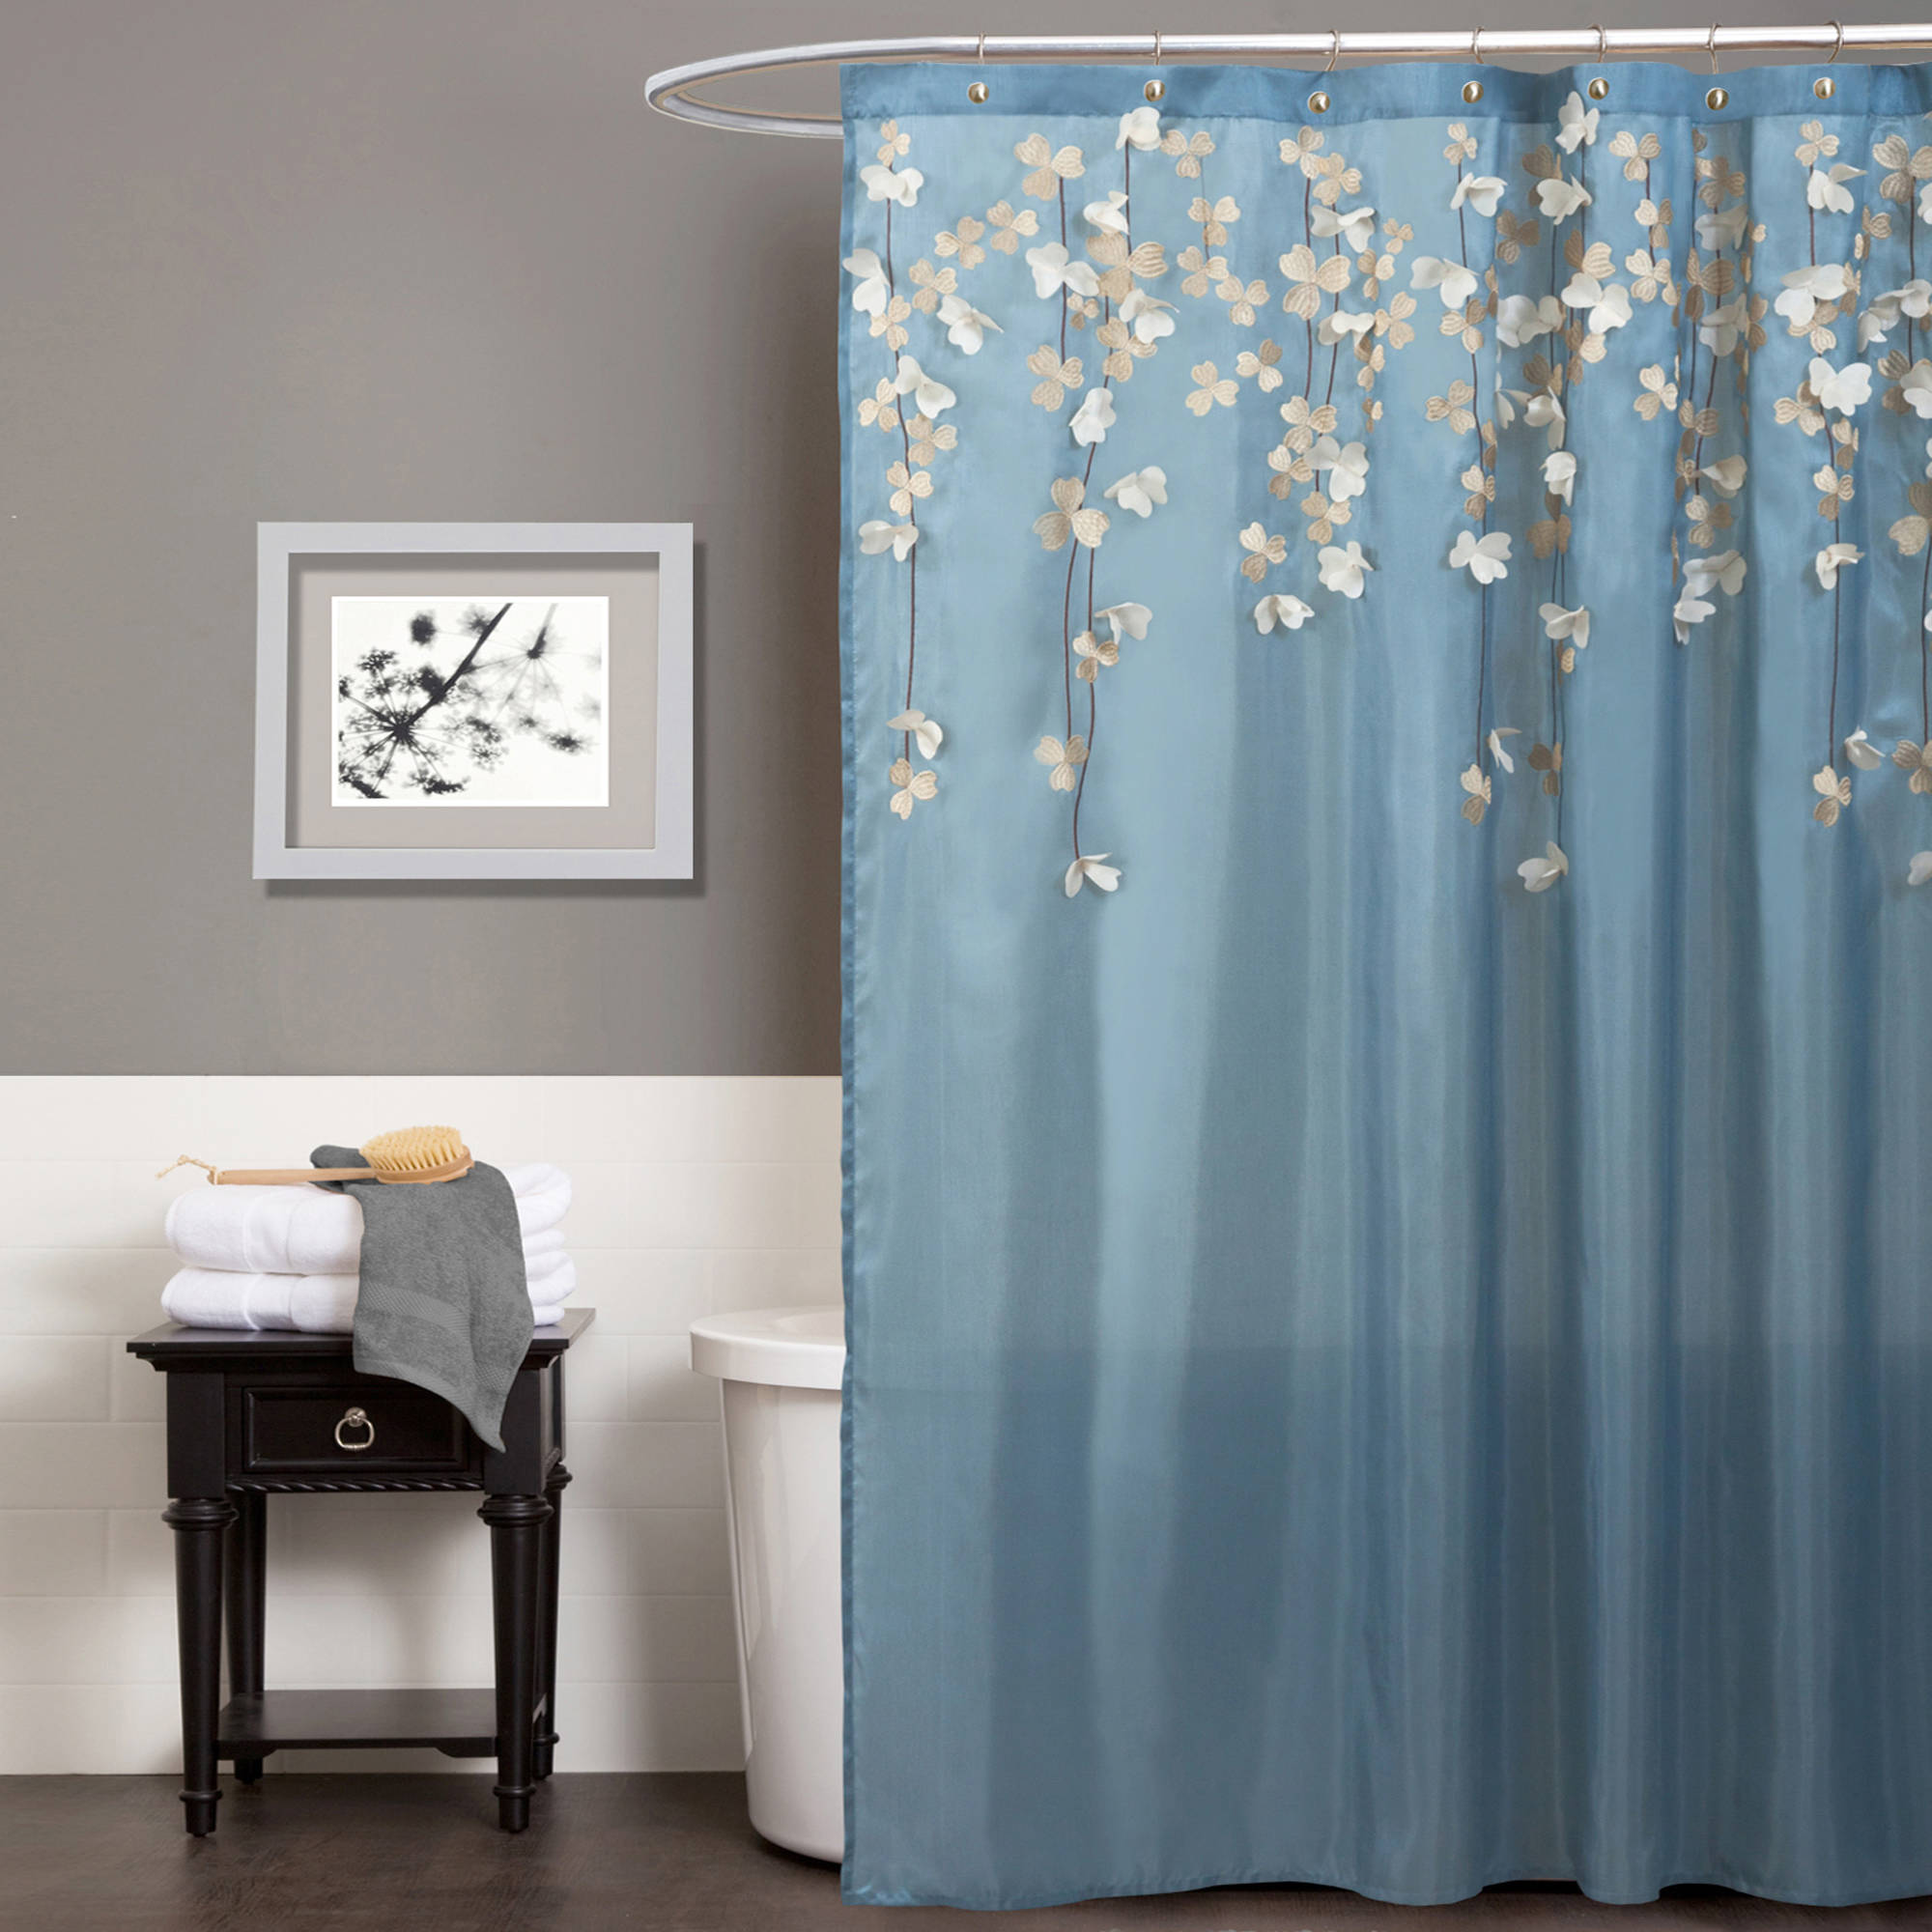 Bathroom lighting window wall paint curtain door outdoor shower - Shower Curtains Below 70